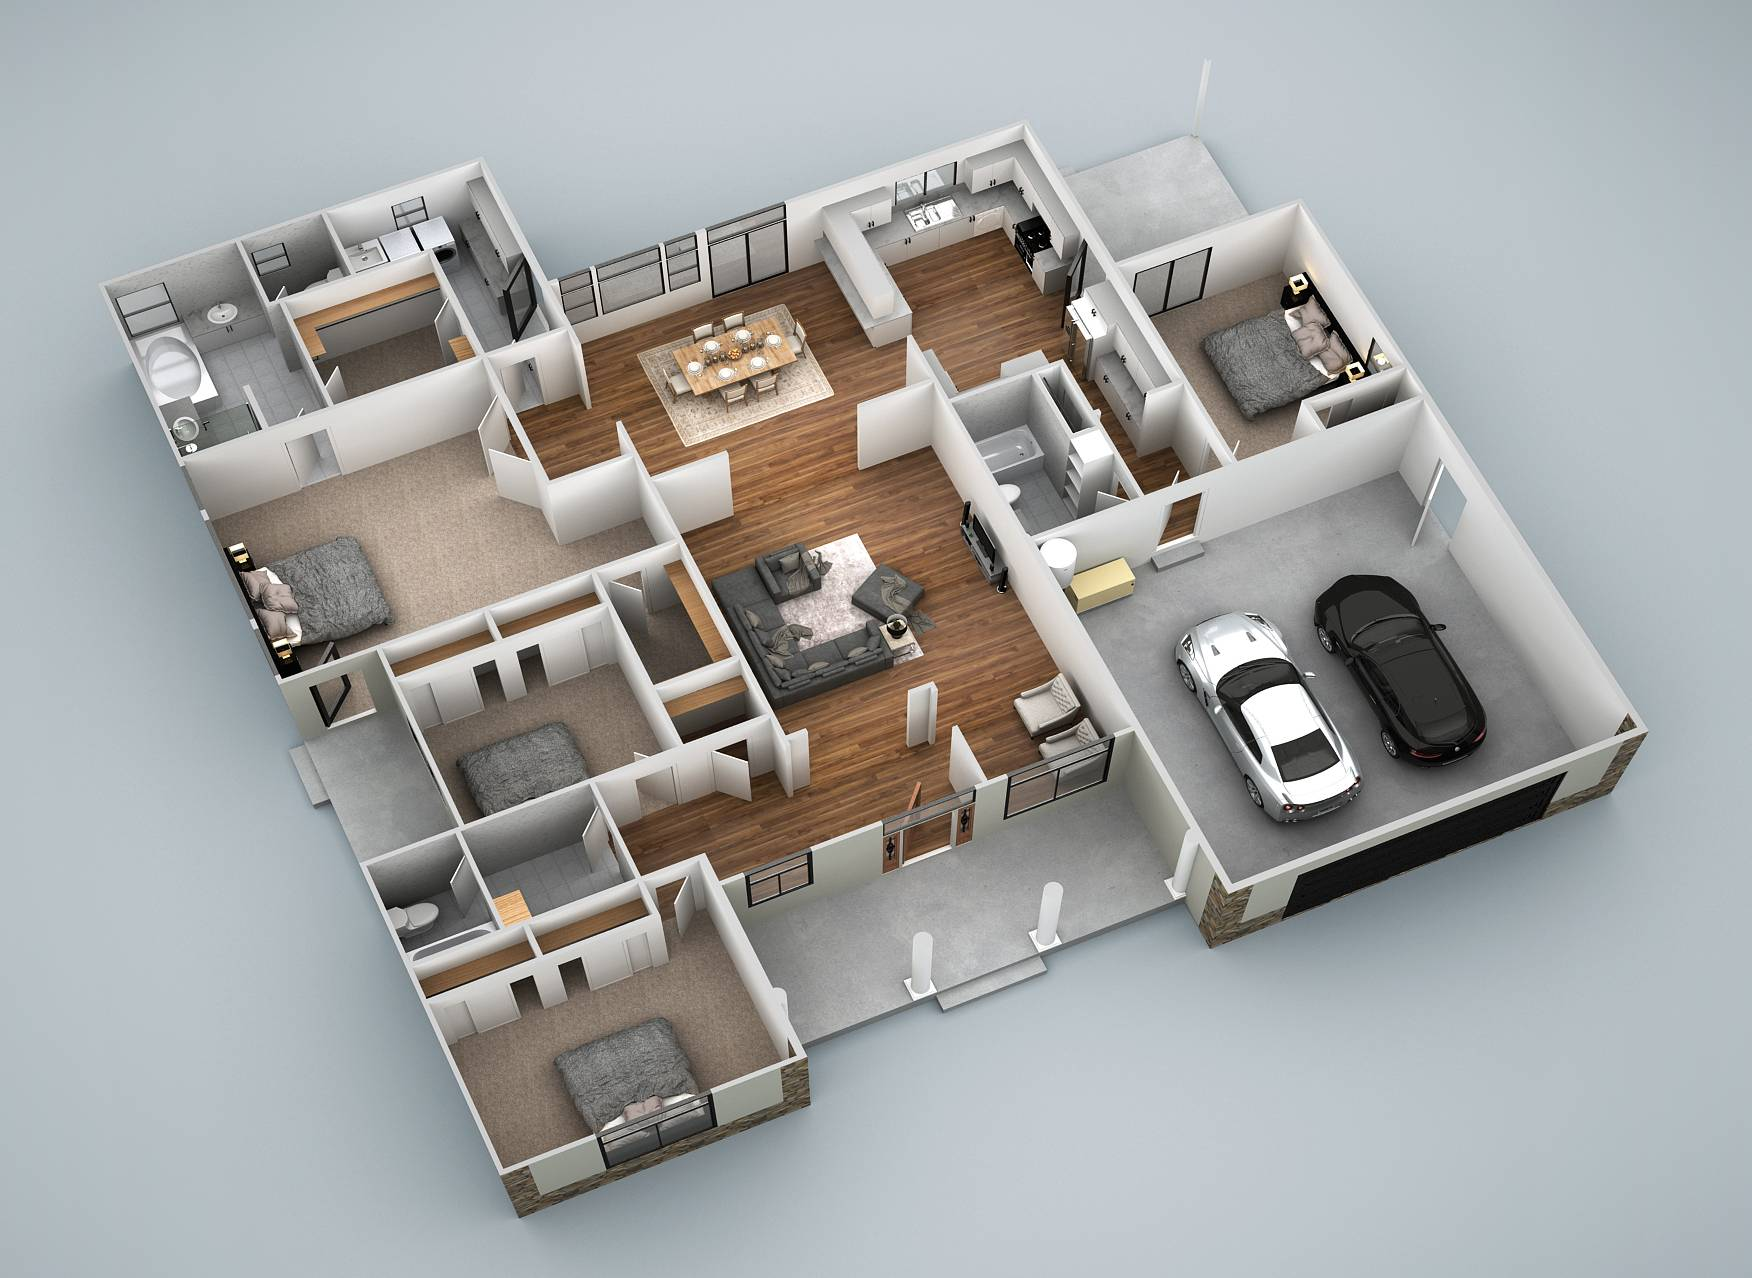 springfield 3d ground floor plan view revised 2